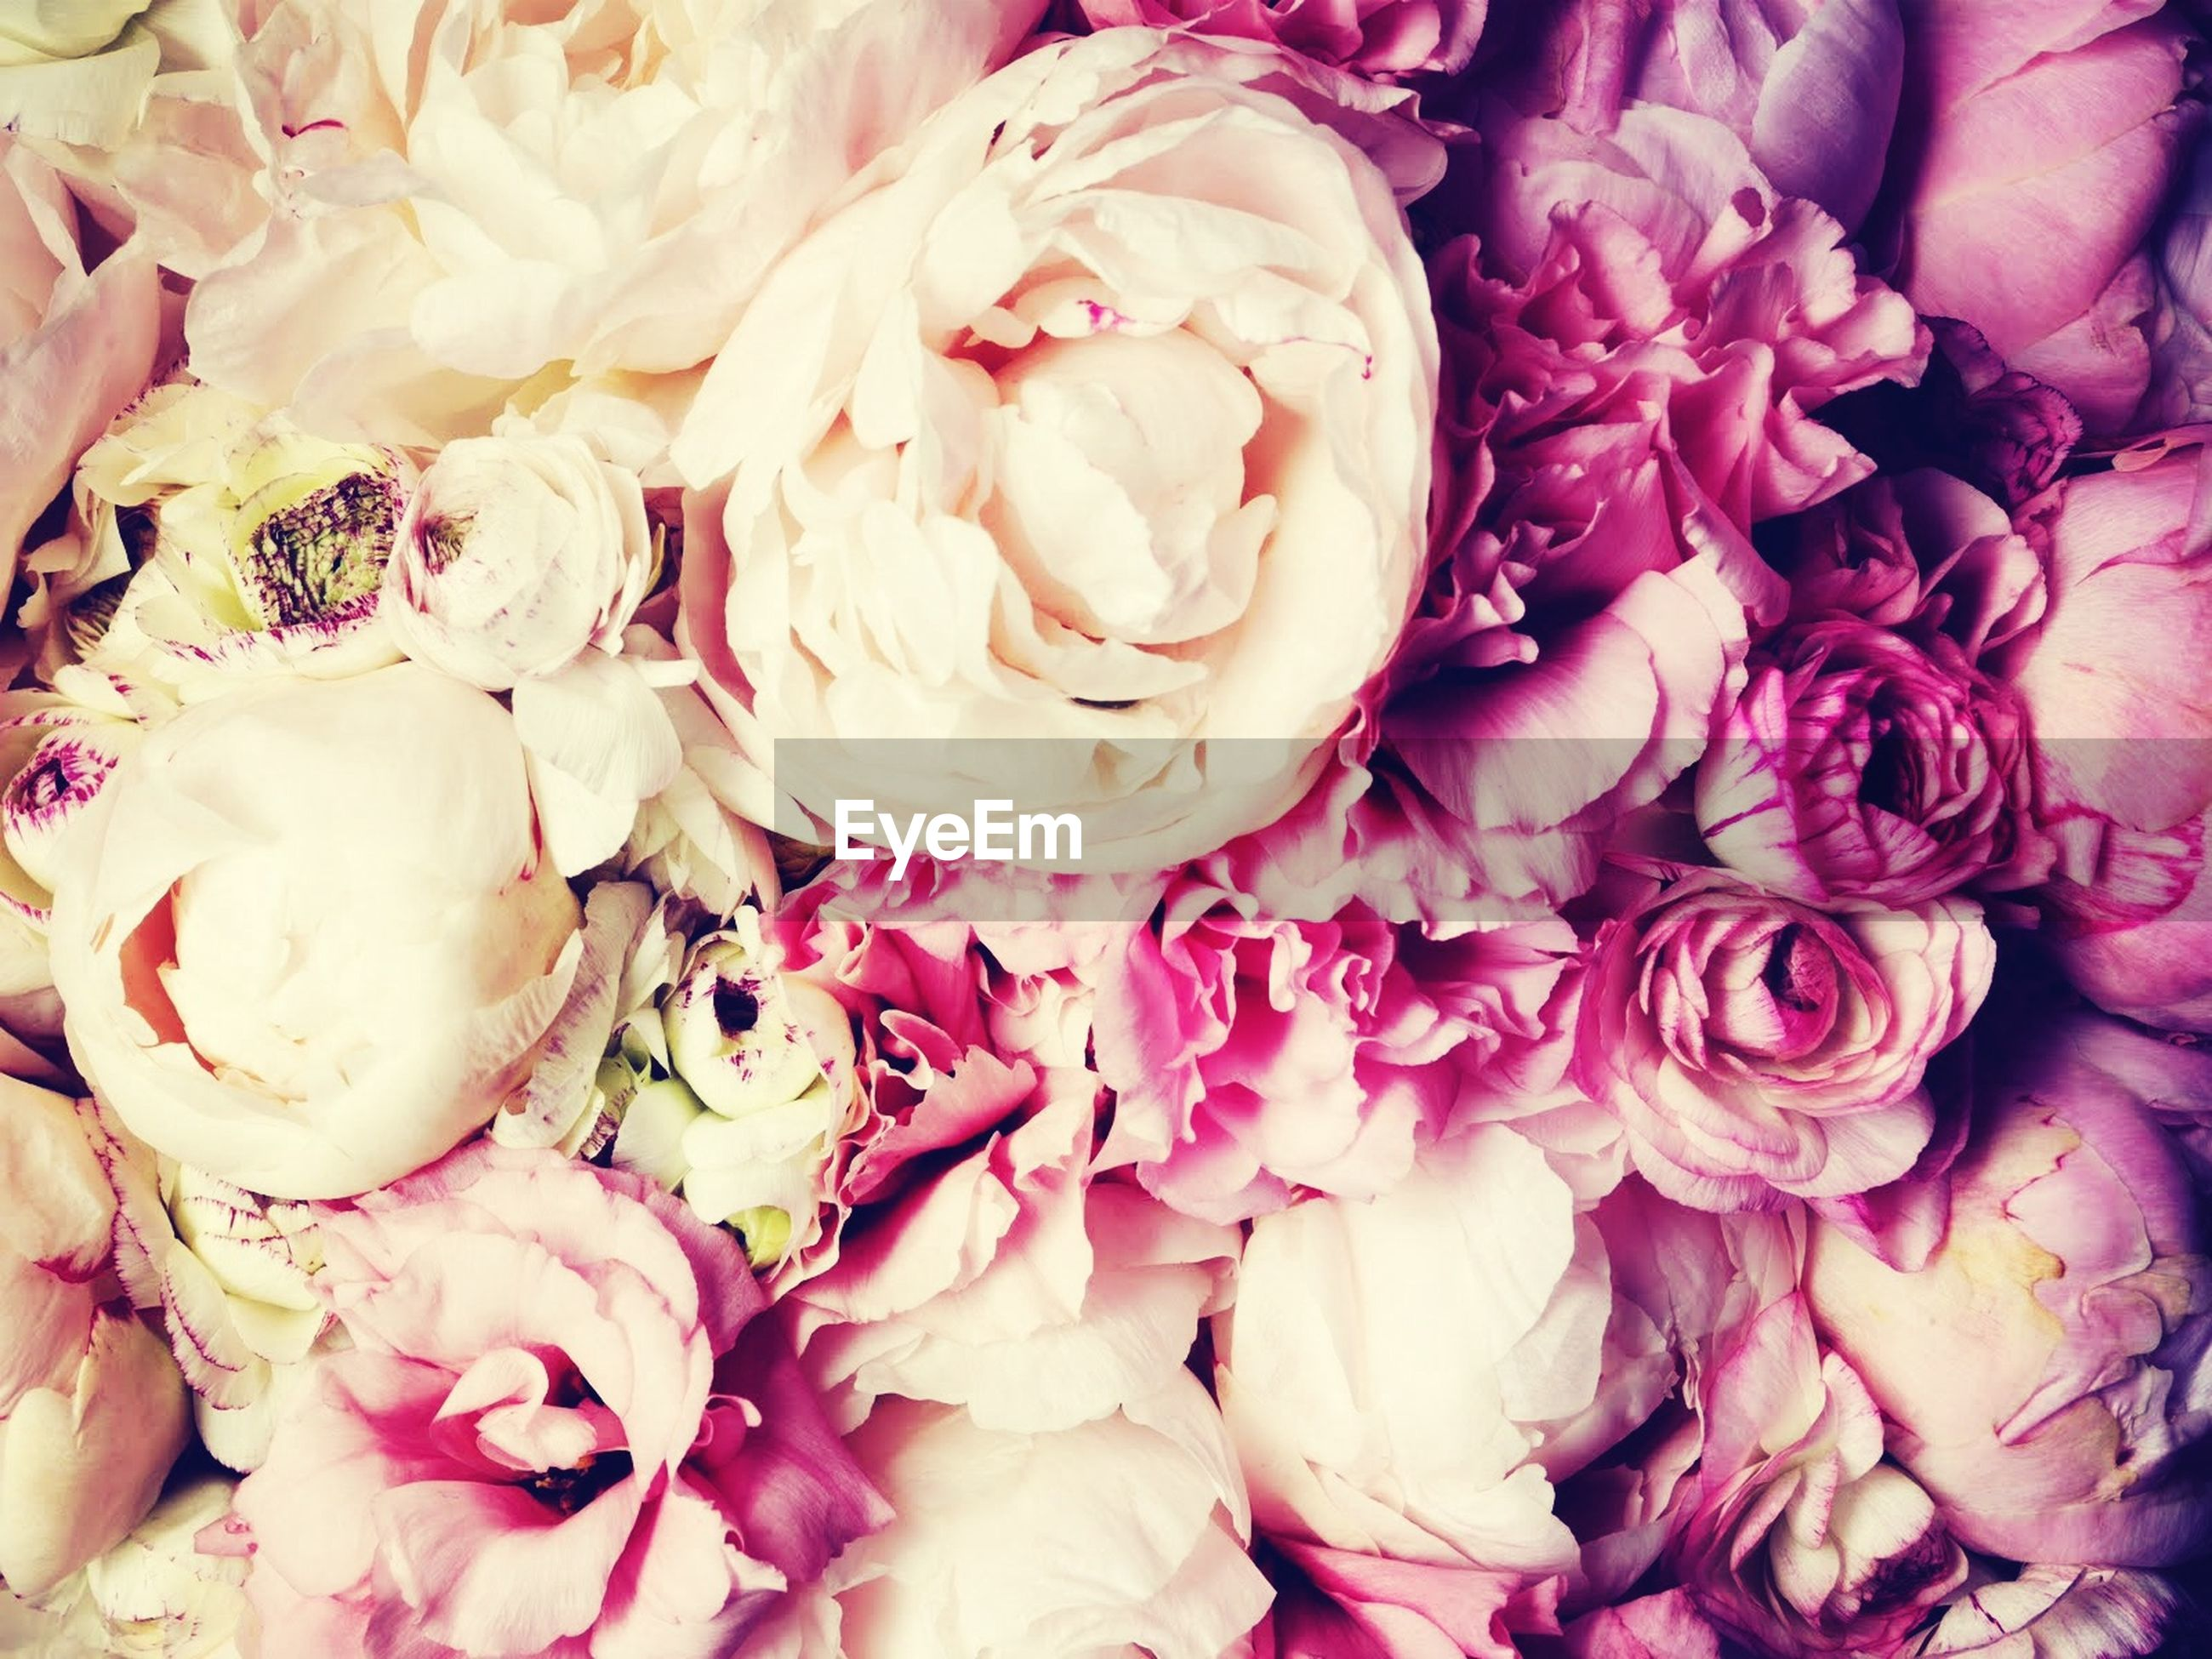 flower, freshness, petal, rose - flower, full frame, fragility, pink color, flower head, indoors, beauty in nature, backgrounds, bouquet, close-up, nature, rose, high angle view, bunch of flowers, variation, abundance, no people